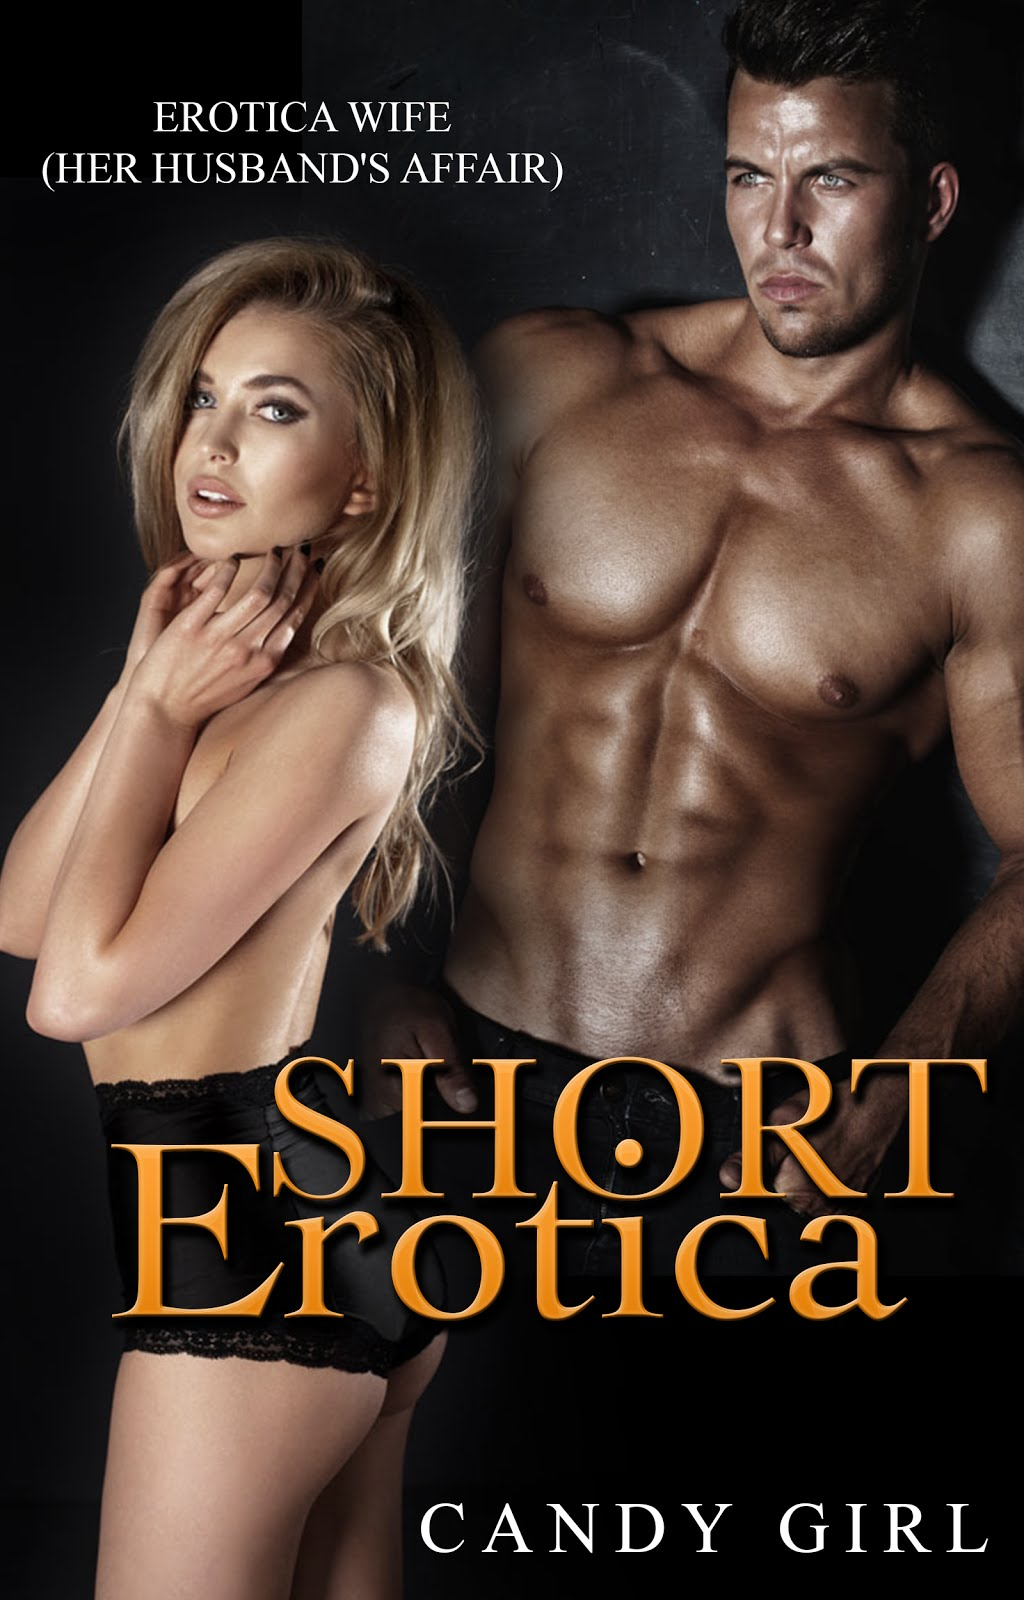 FREE for erotica lovers